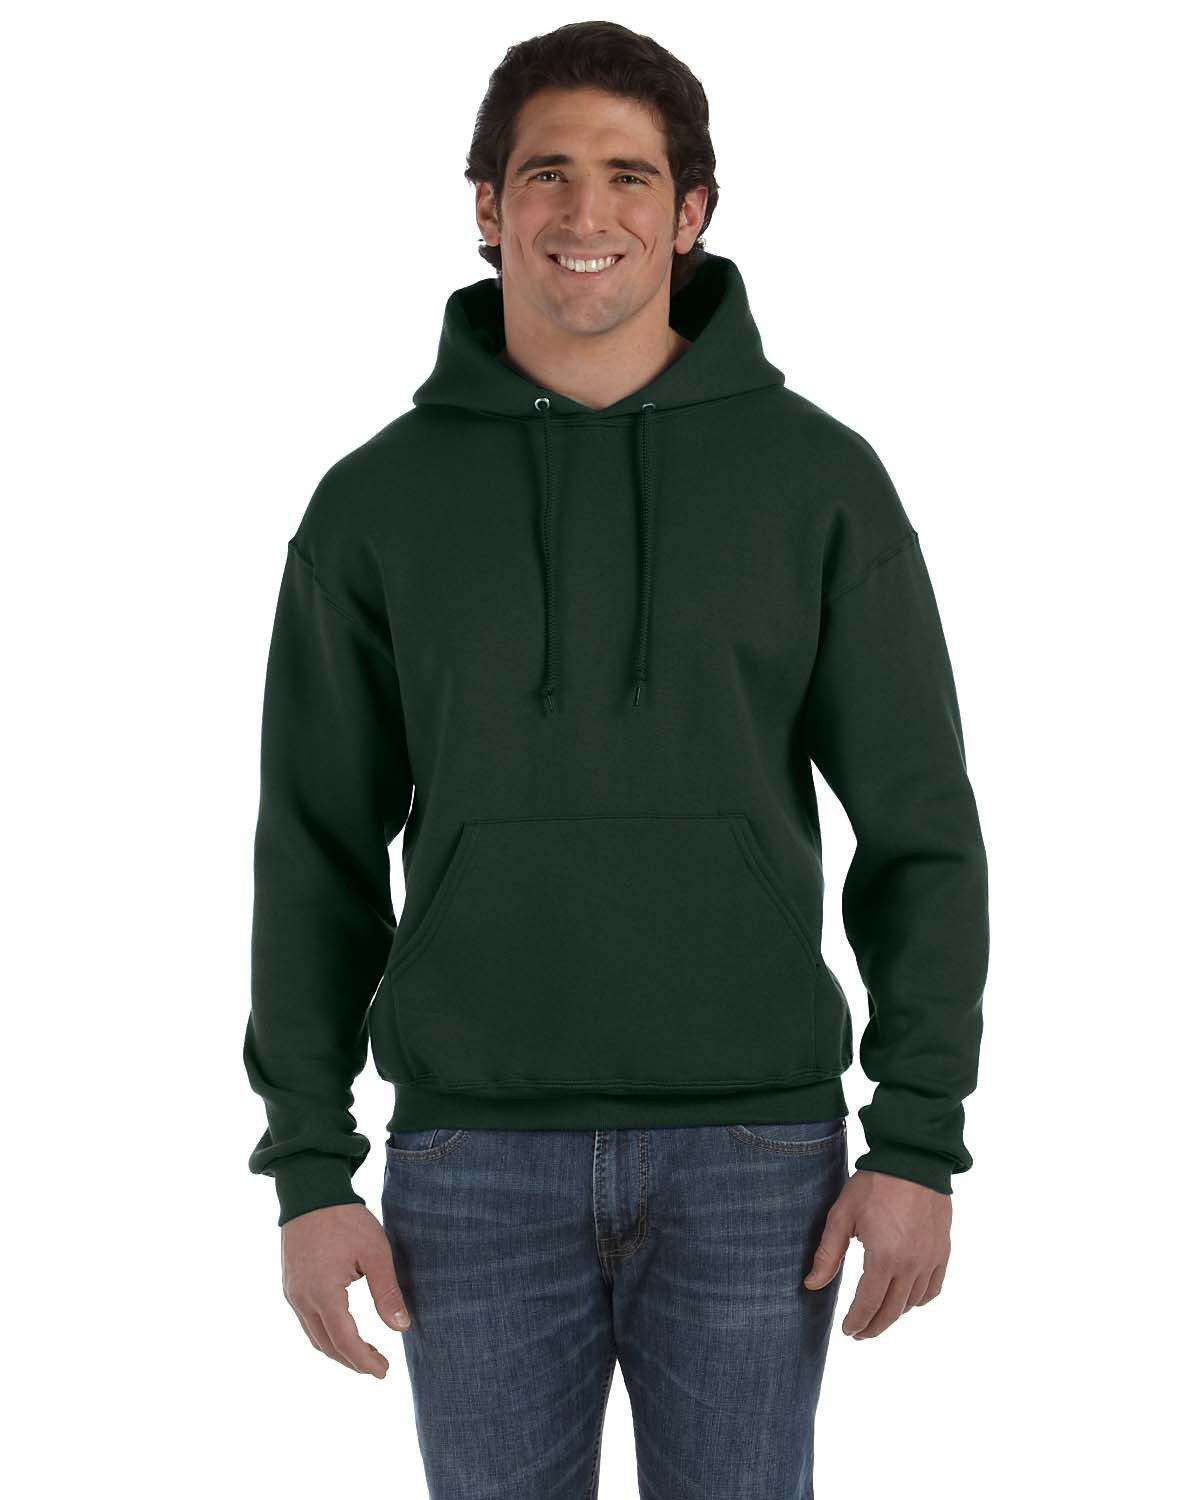 Fruit of the Loom Adult Supercotton™ Pullover Hooded Sweatshirt FOREST GREEN